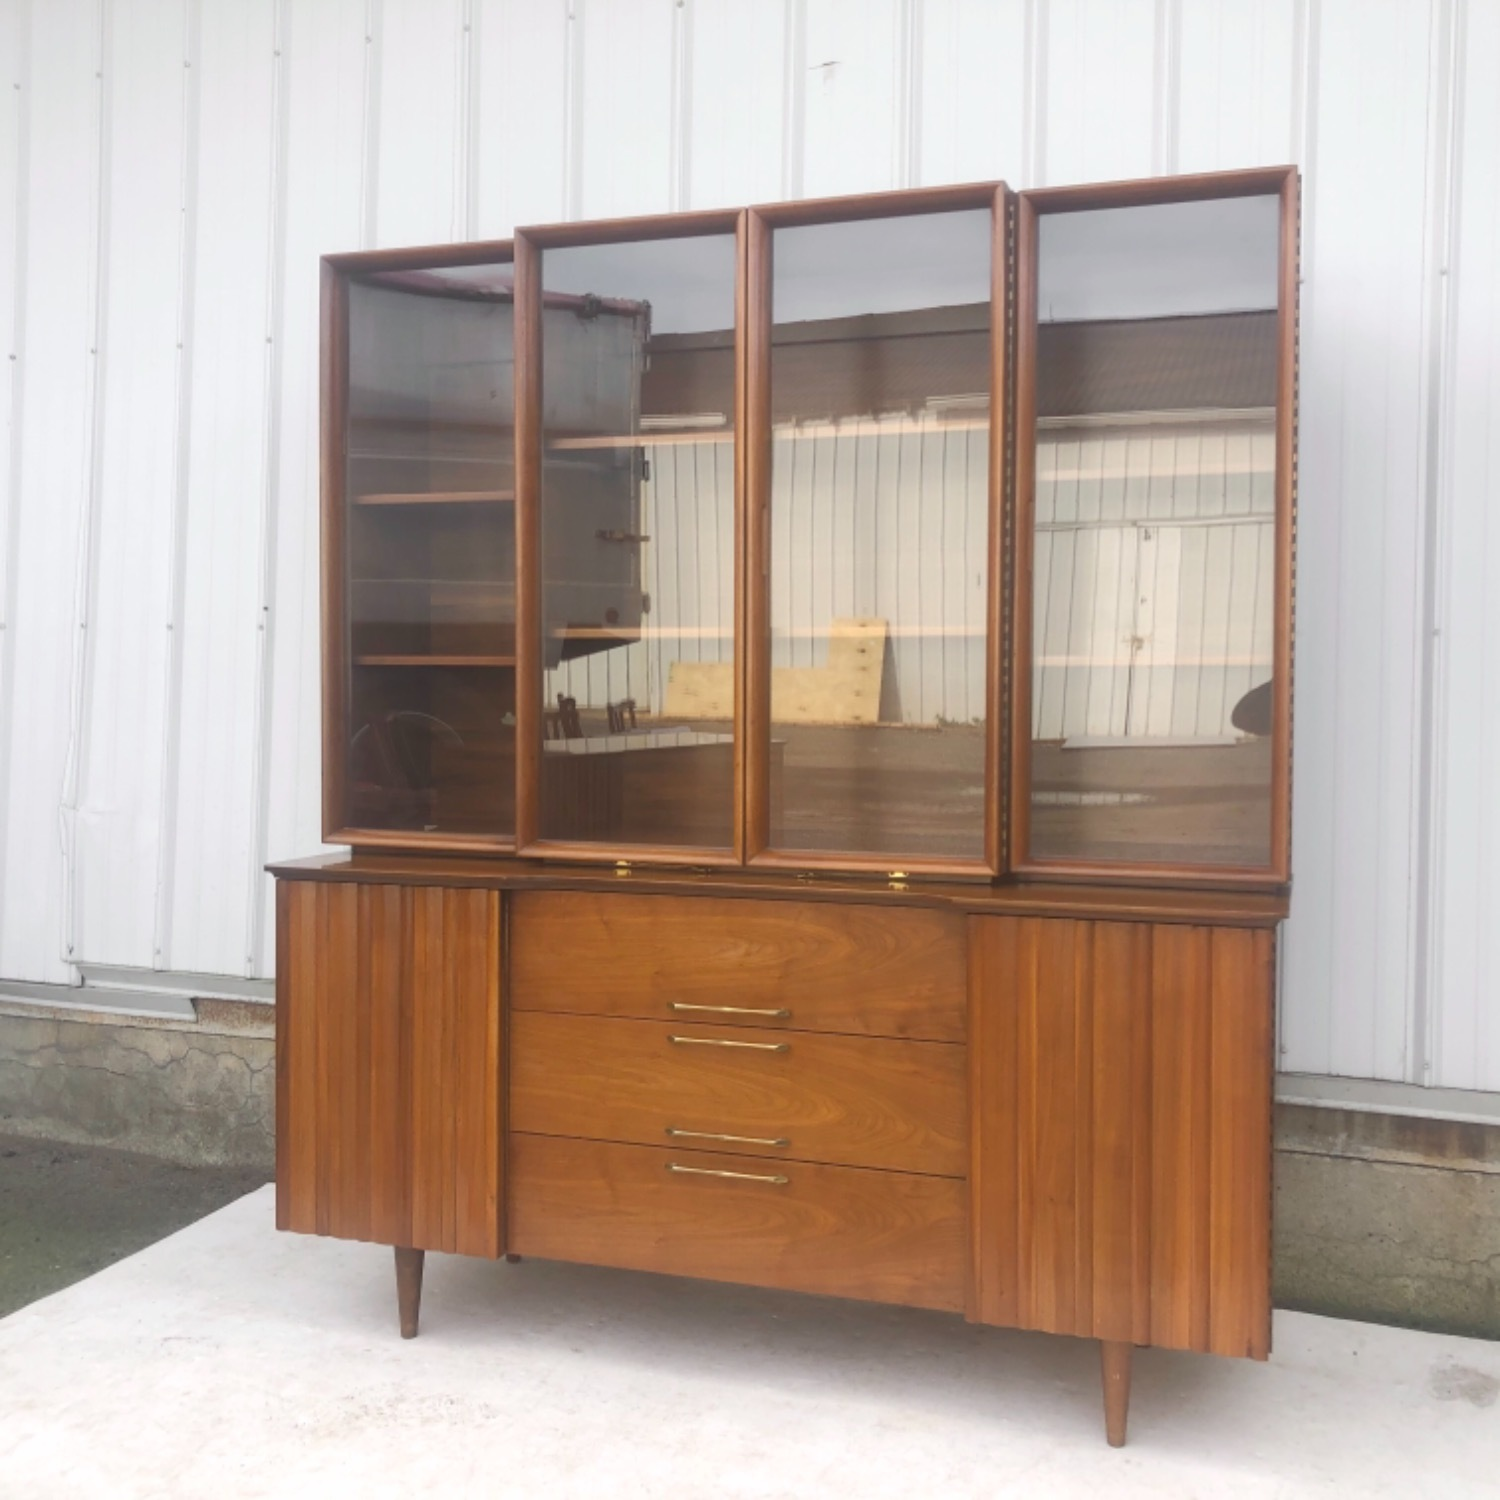 Mid-Century Modern Sideboard With Display Topper - image-6